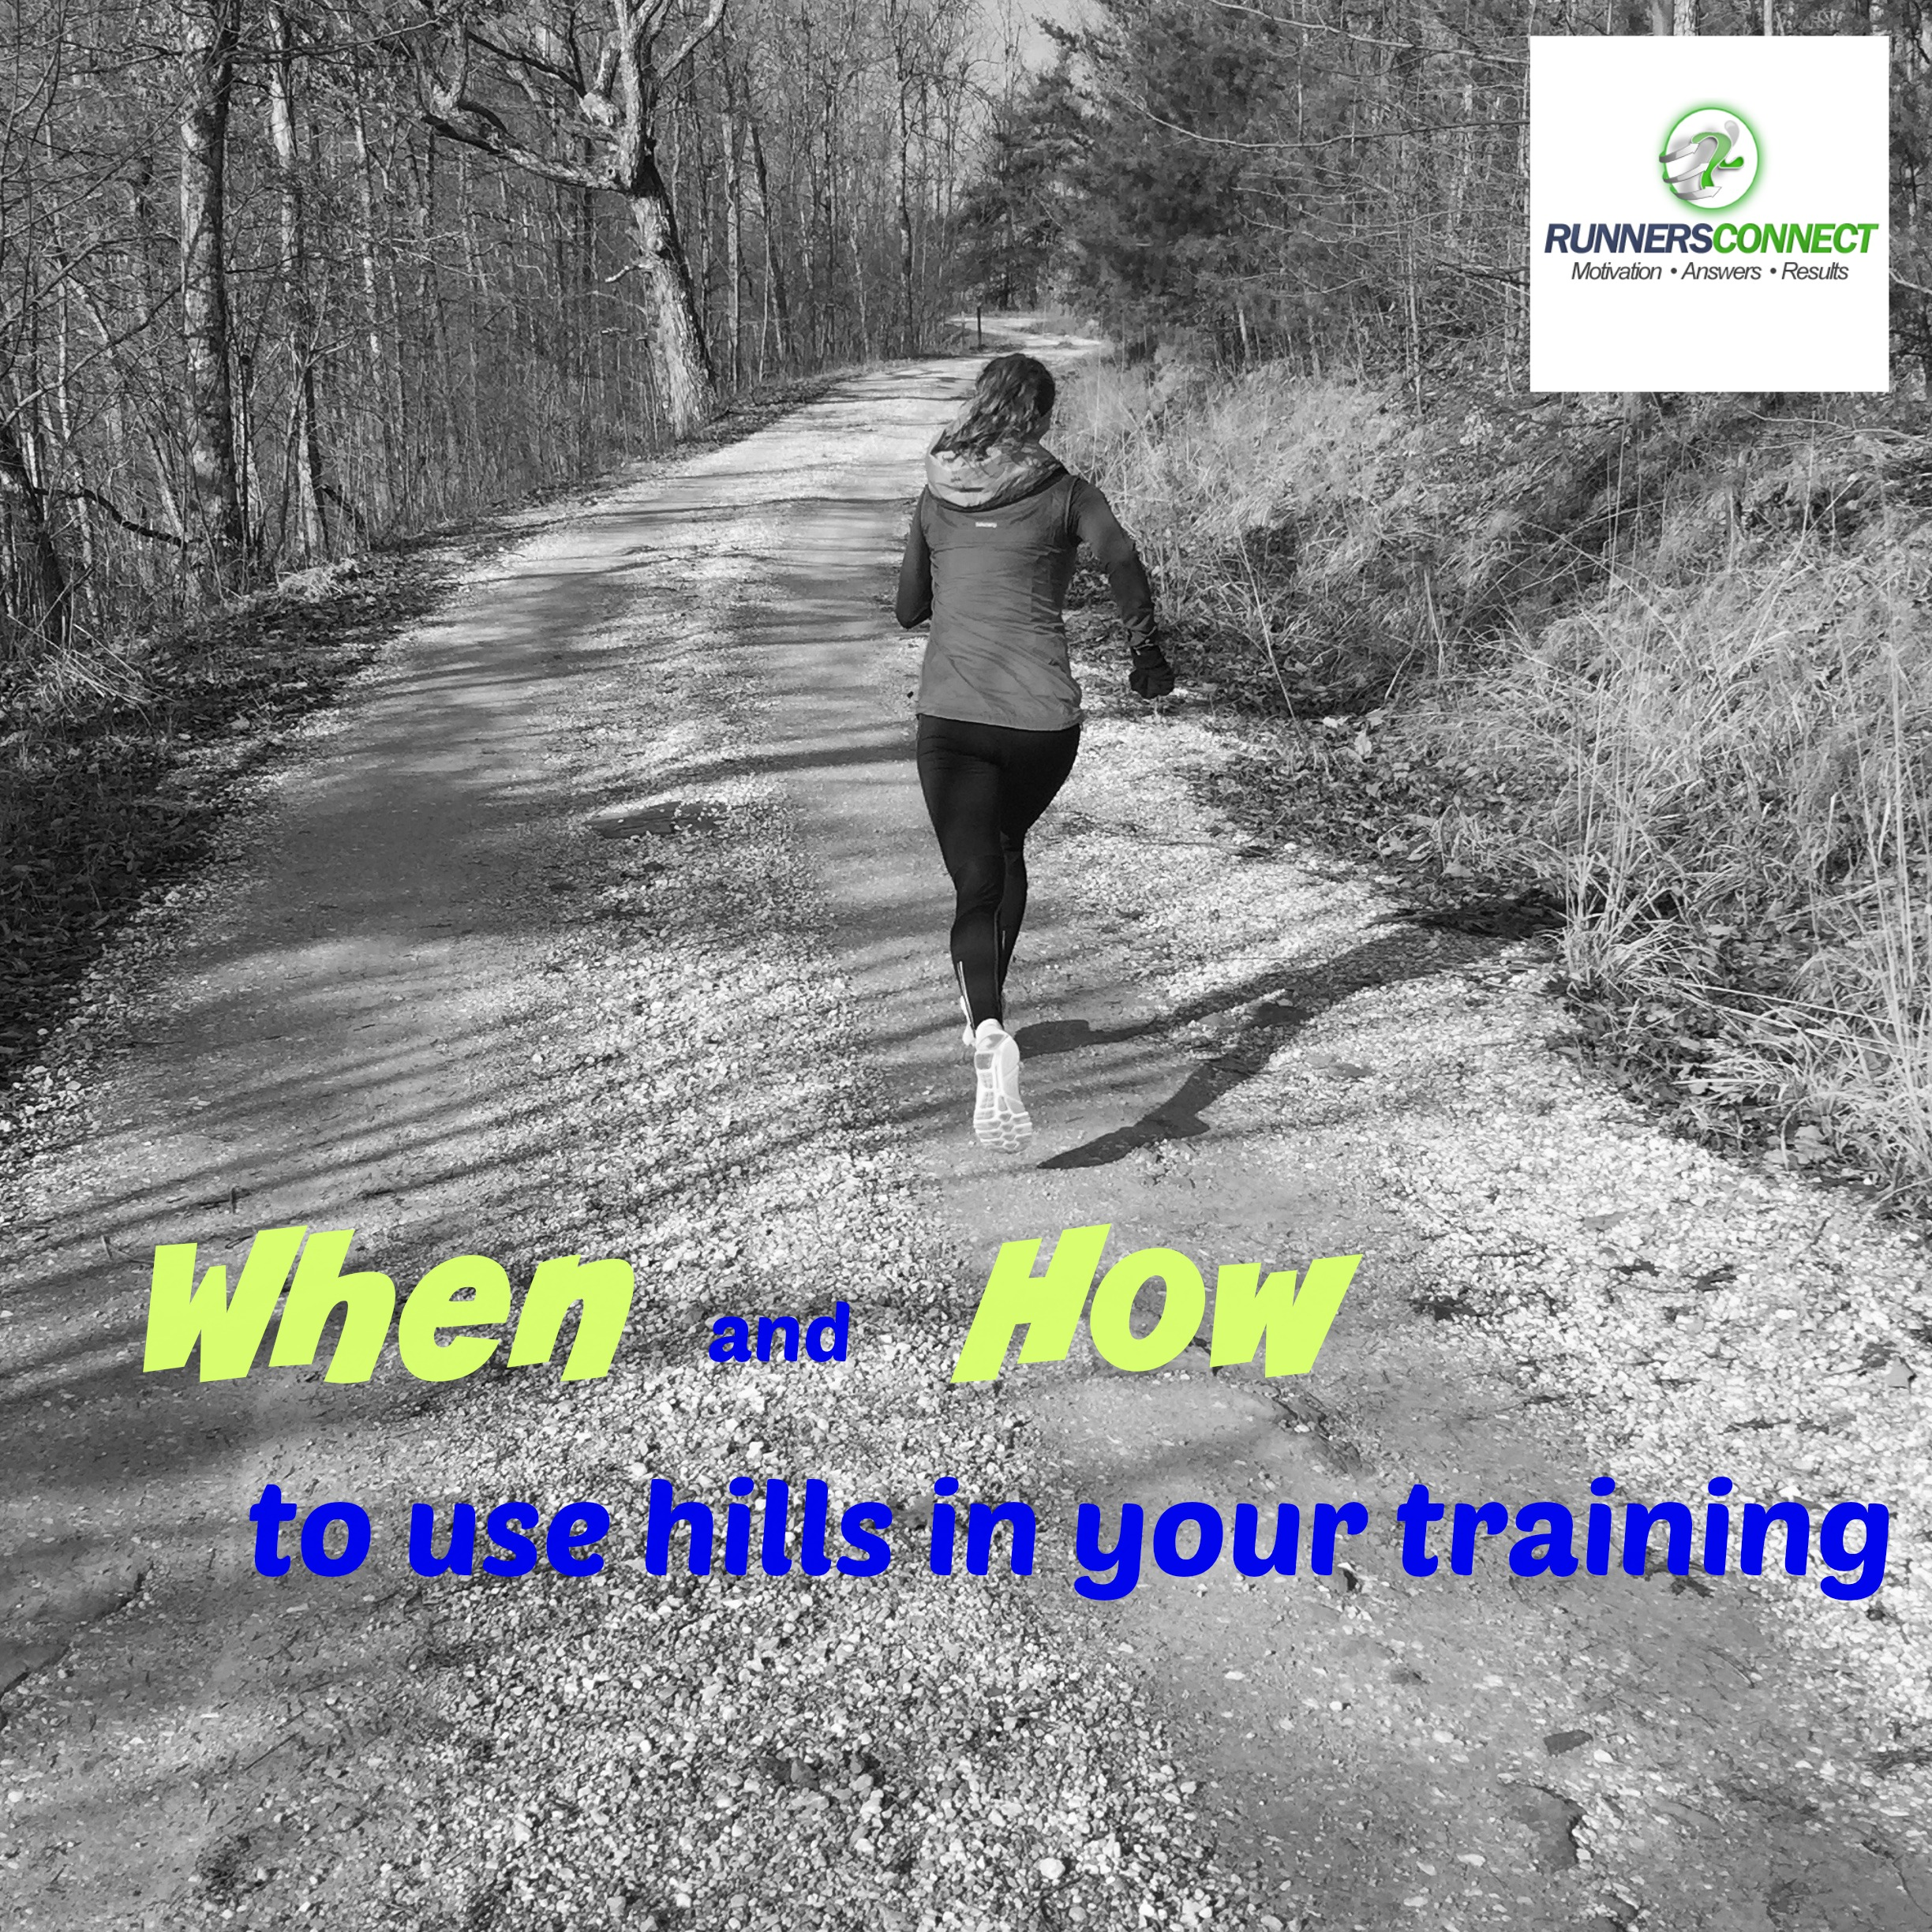 Training for a hilly race